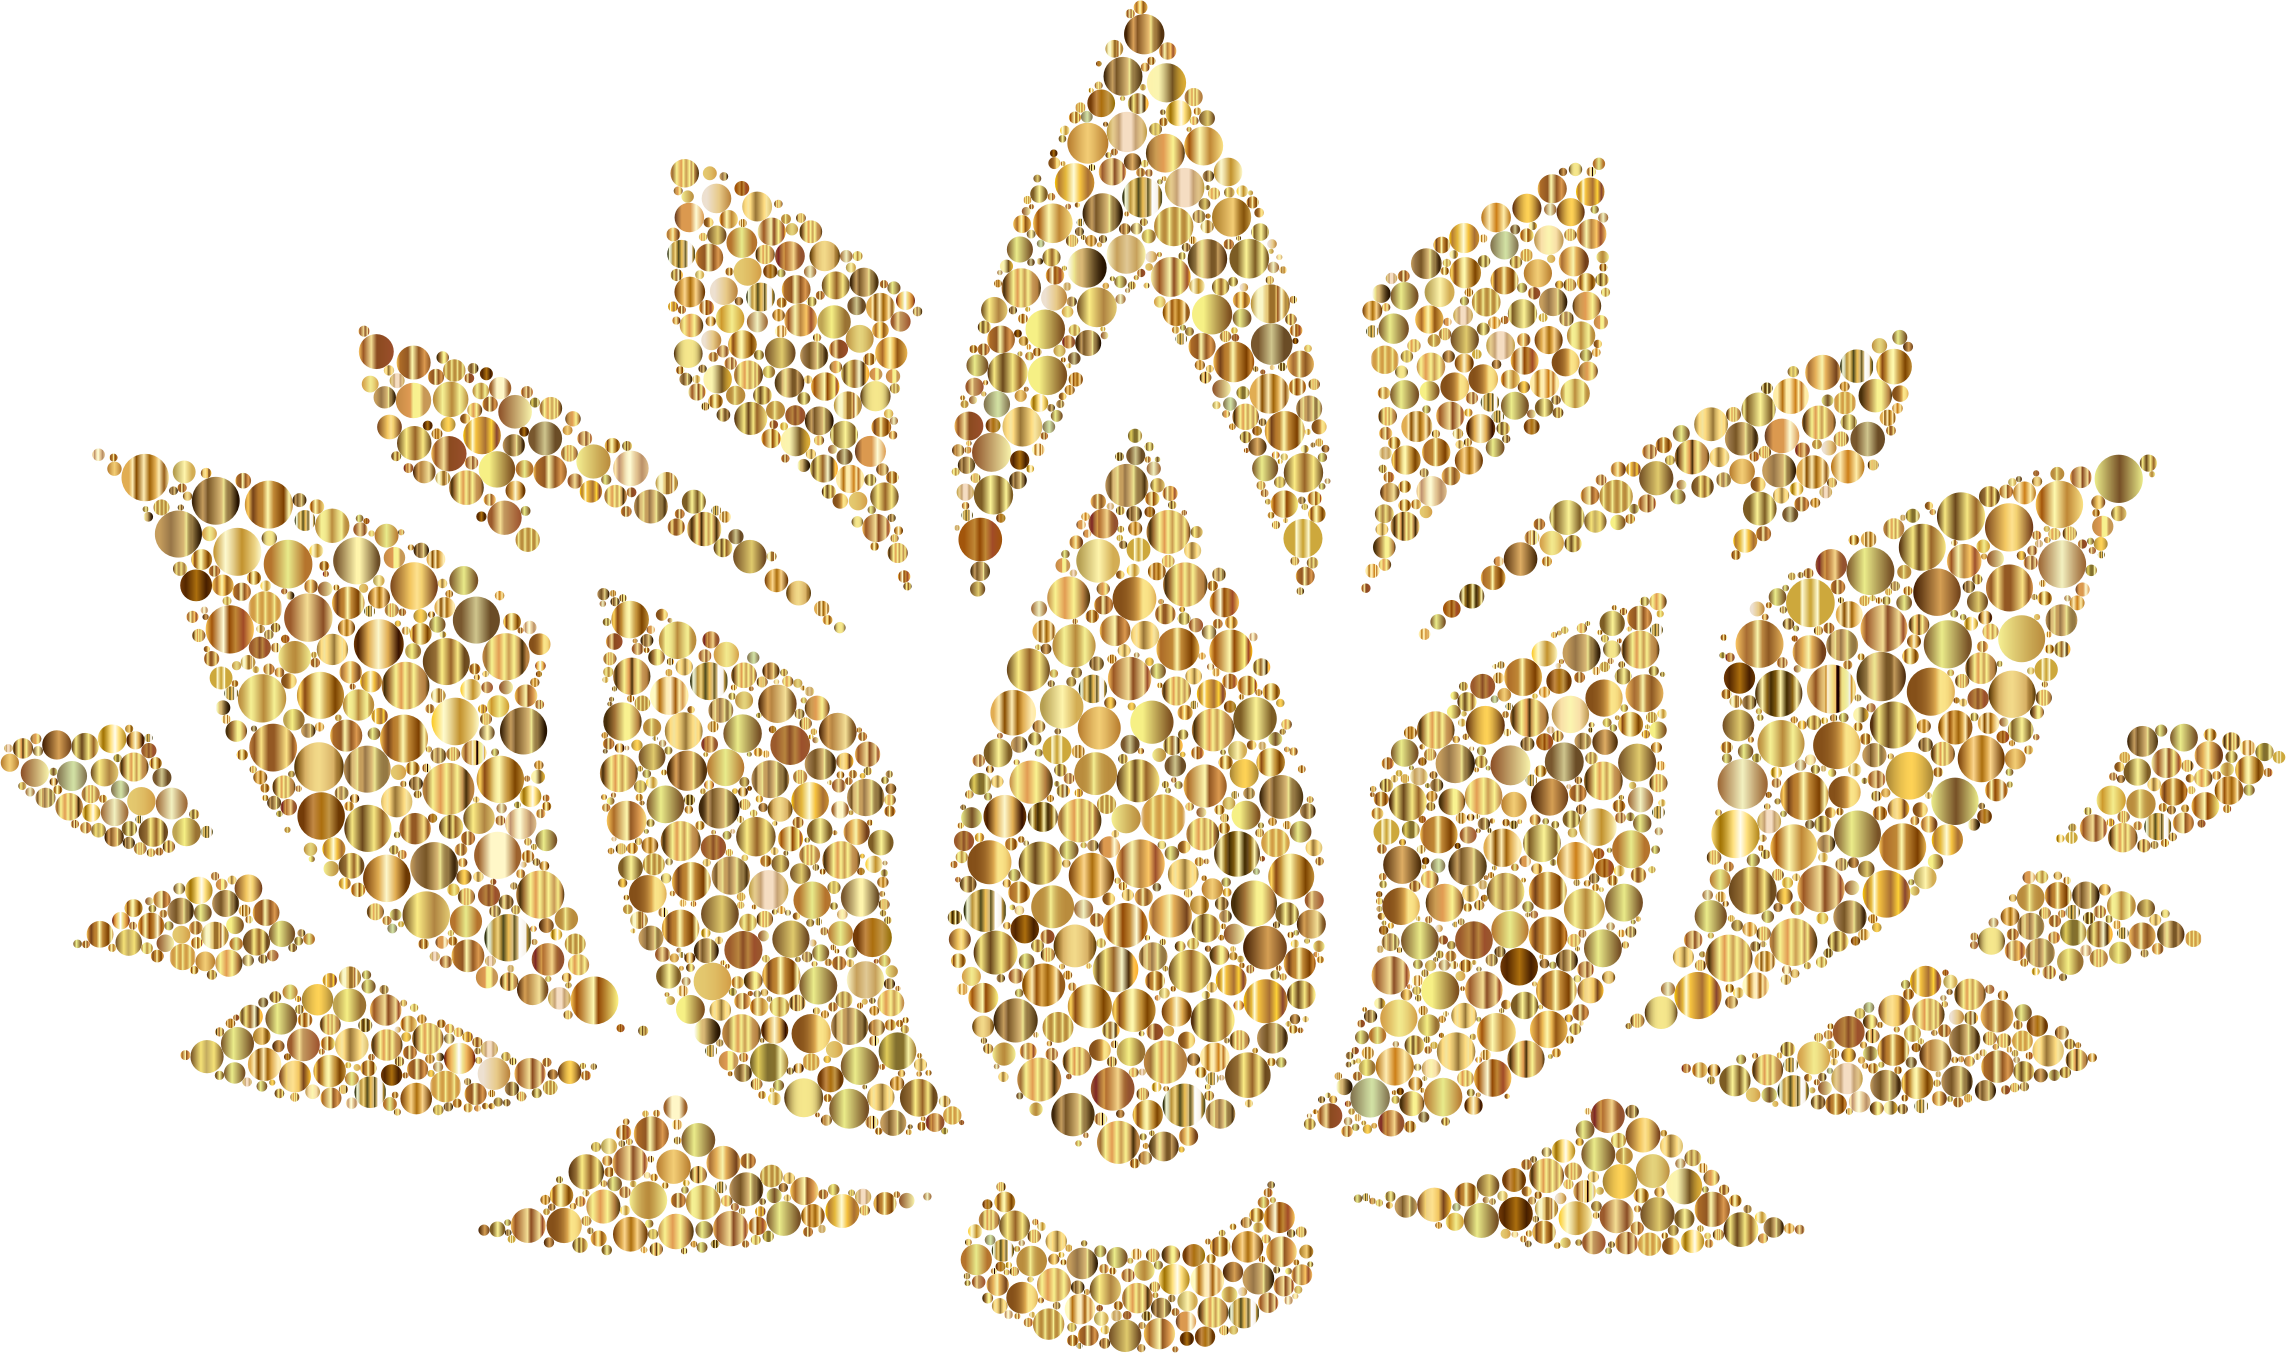 Crown fillagree clipart png transparent stock Clipart - Prismatic Lotus Flower Silhouette 6 Circles 7 No Background png transparent stock